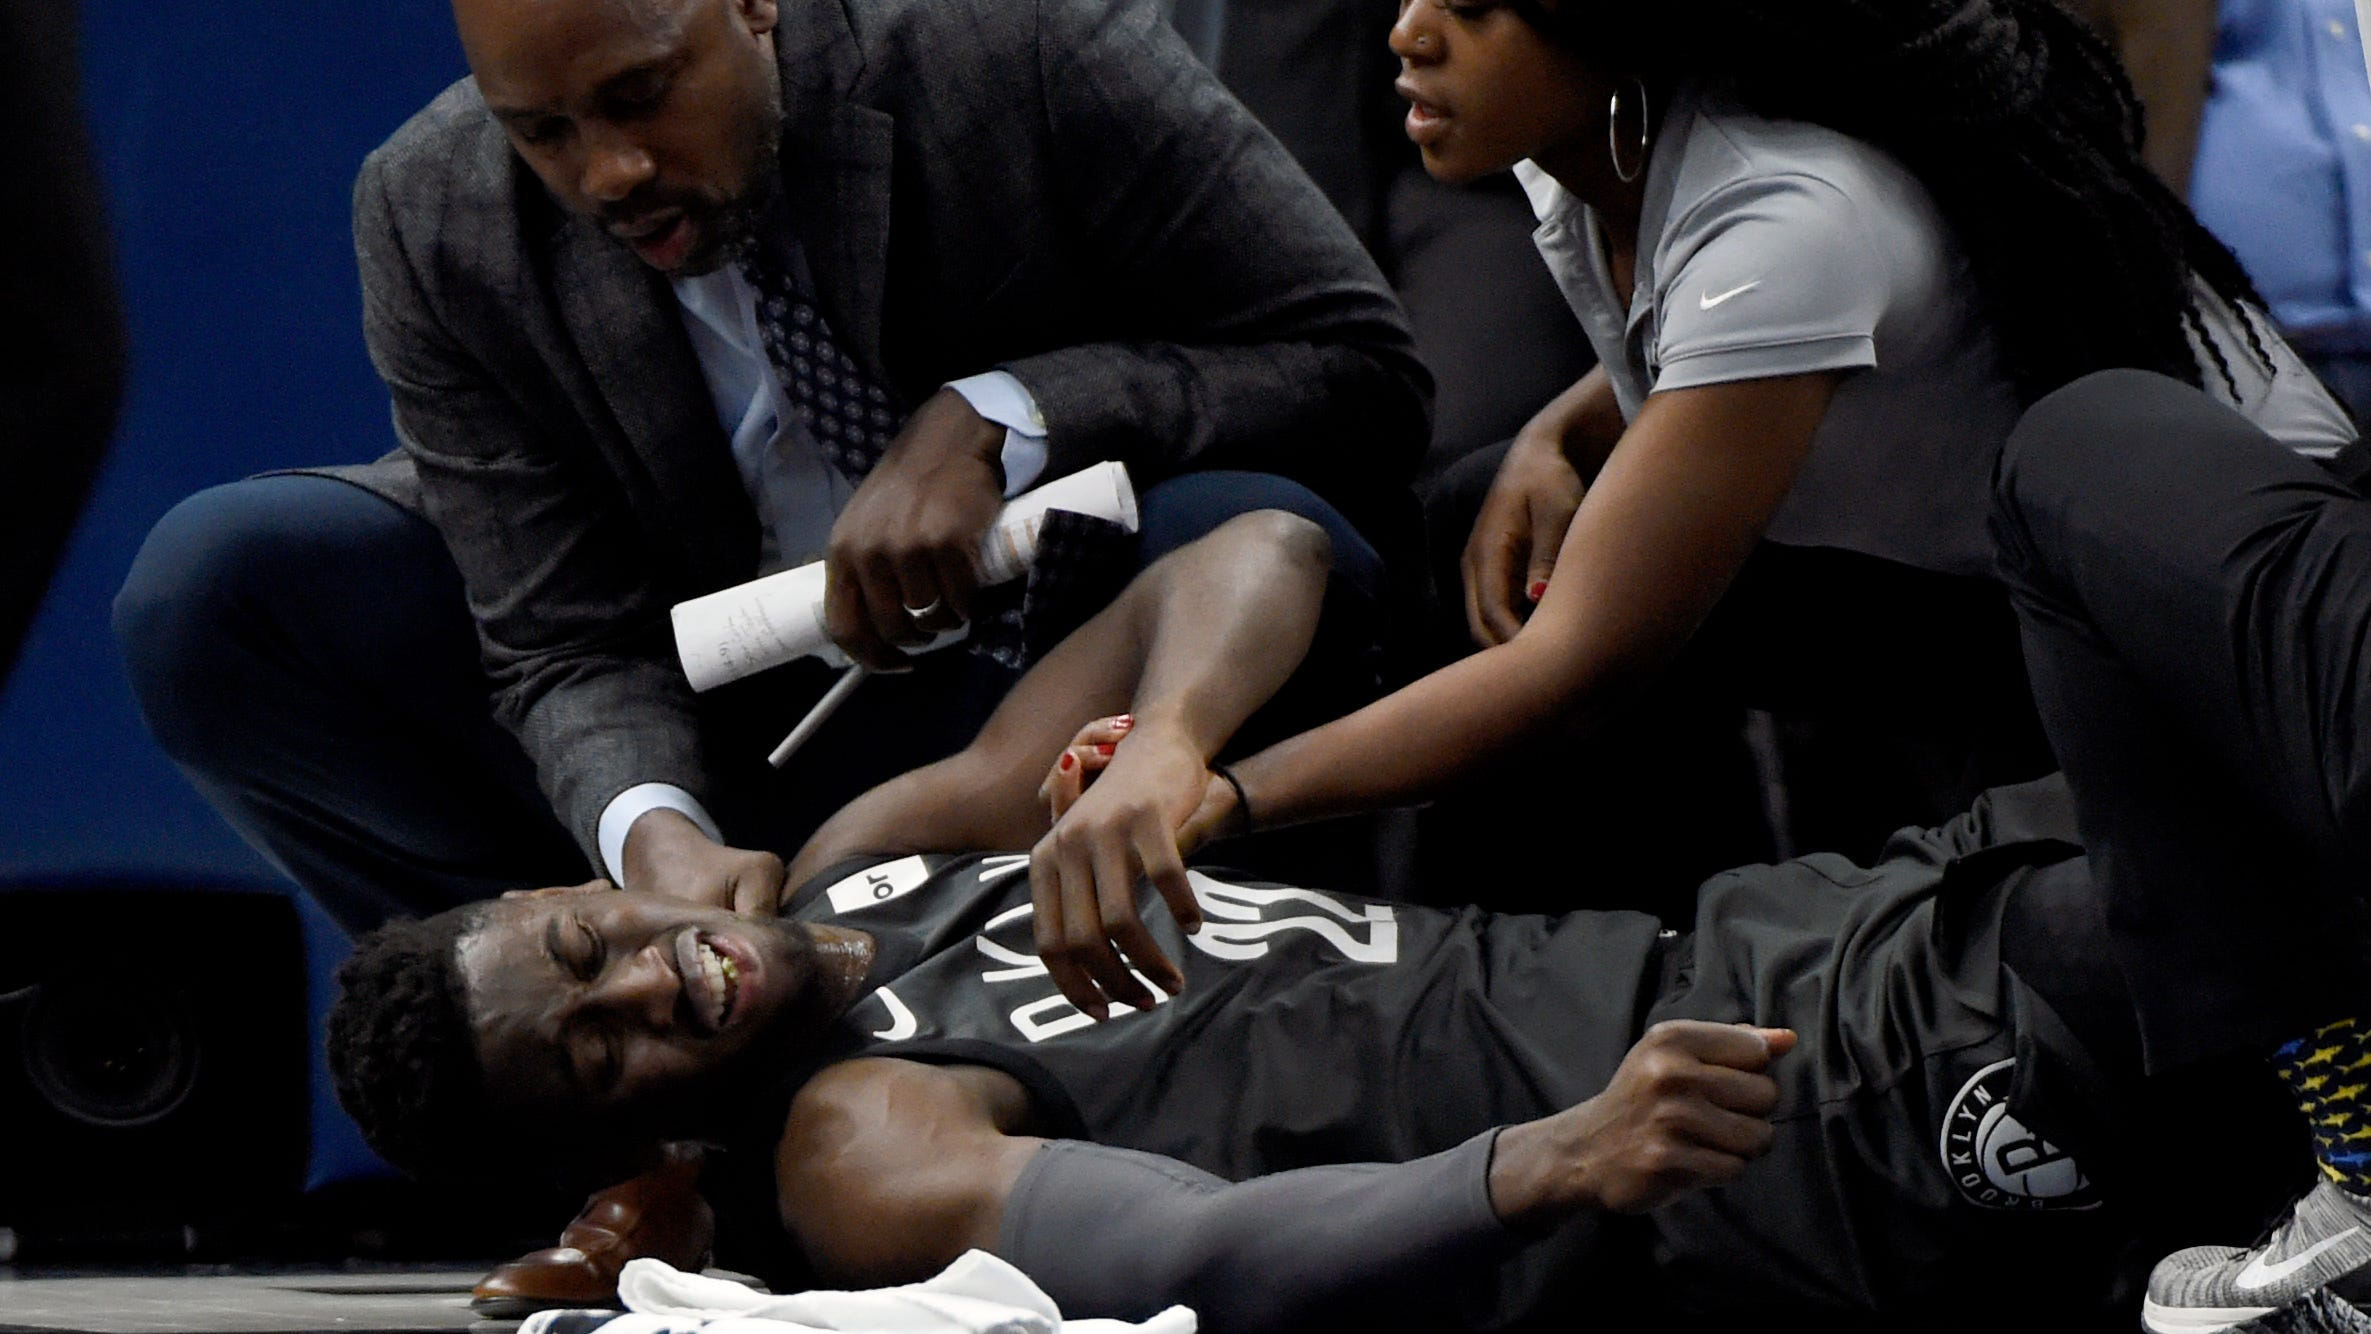 Brooklyn Nets guard Caris LeVert is tended to after an injury during the second quarter of a game against the Minnesota Timberwolves.